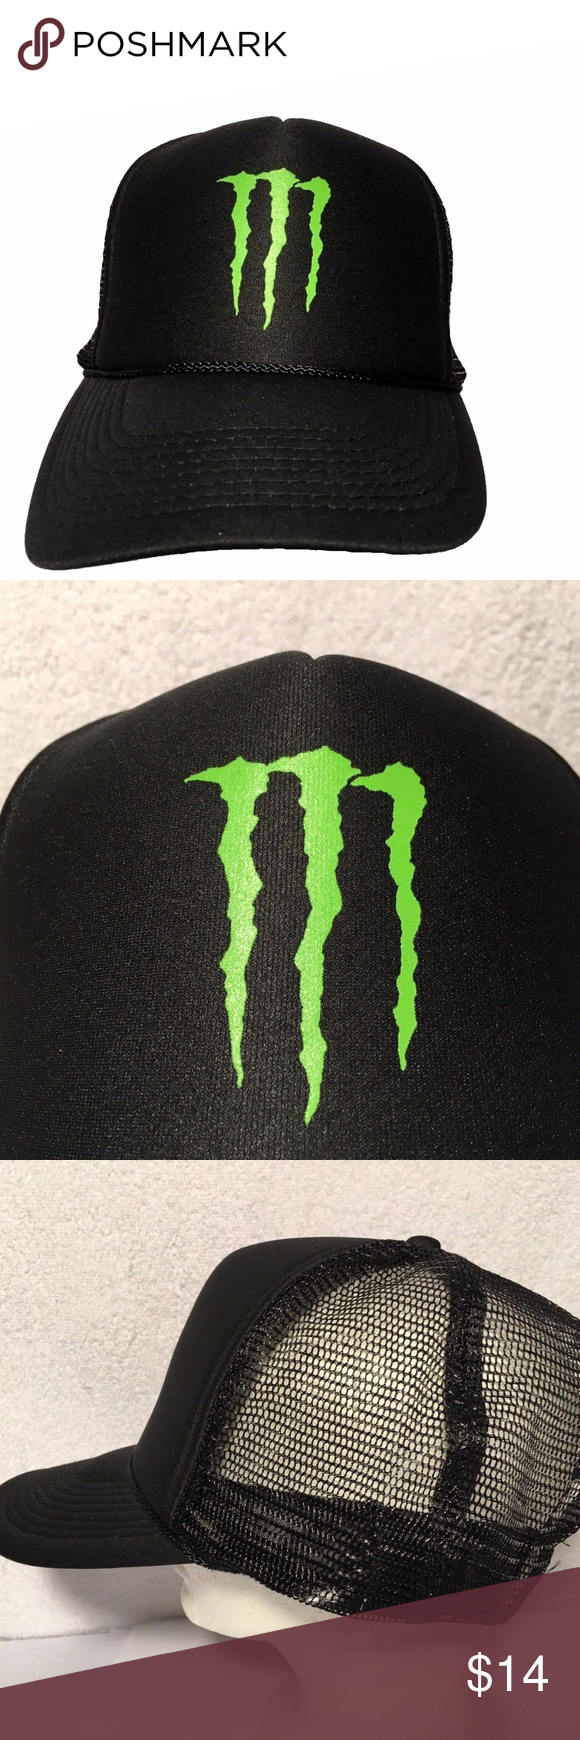 Monster Energy Drink Black Snapback Trucker Hat New without